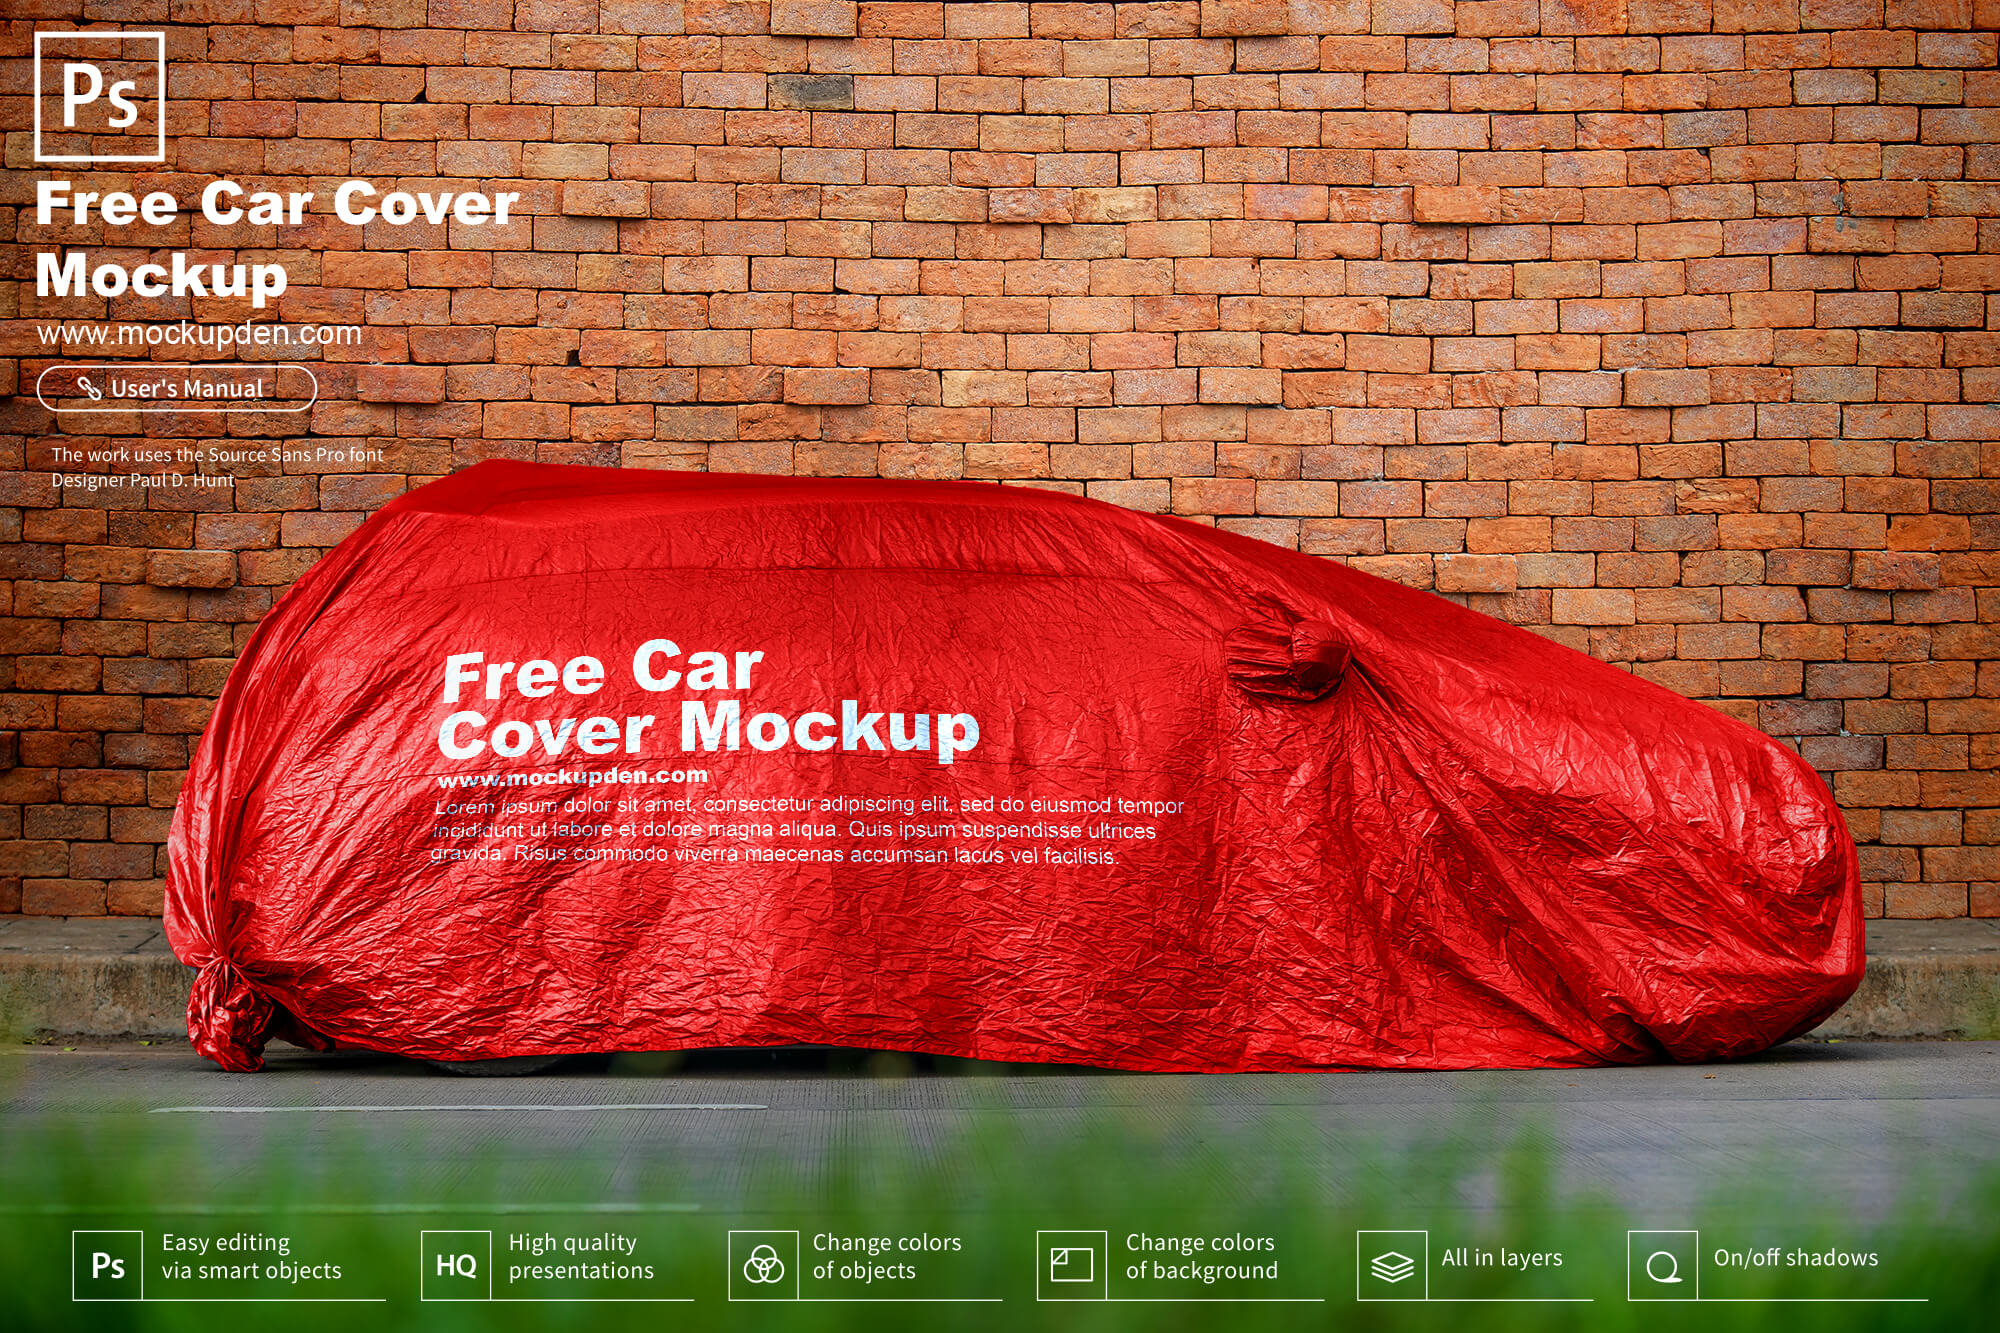 Free Car Cover Mockup PSD Template